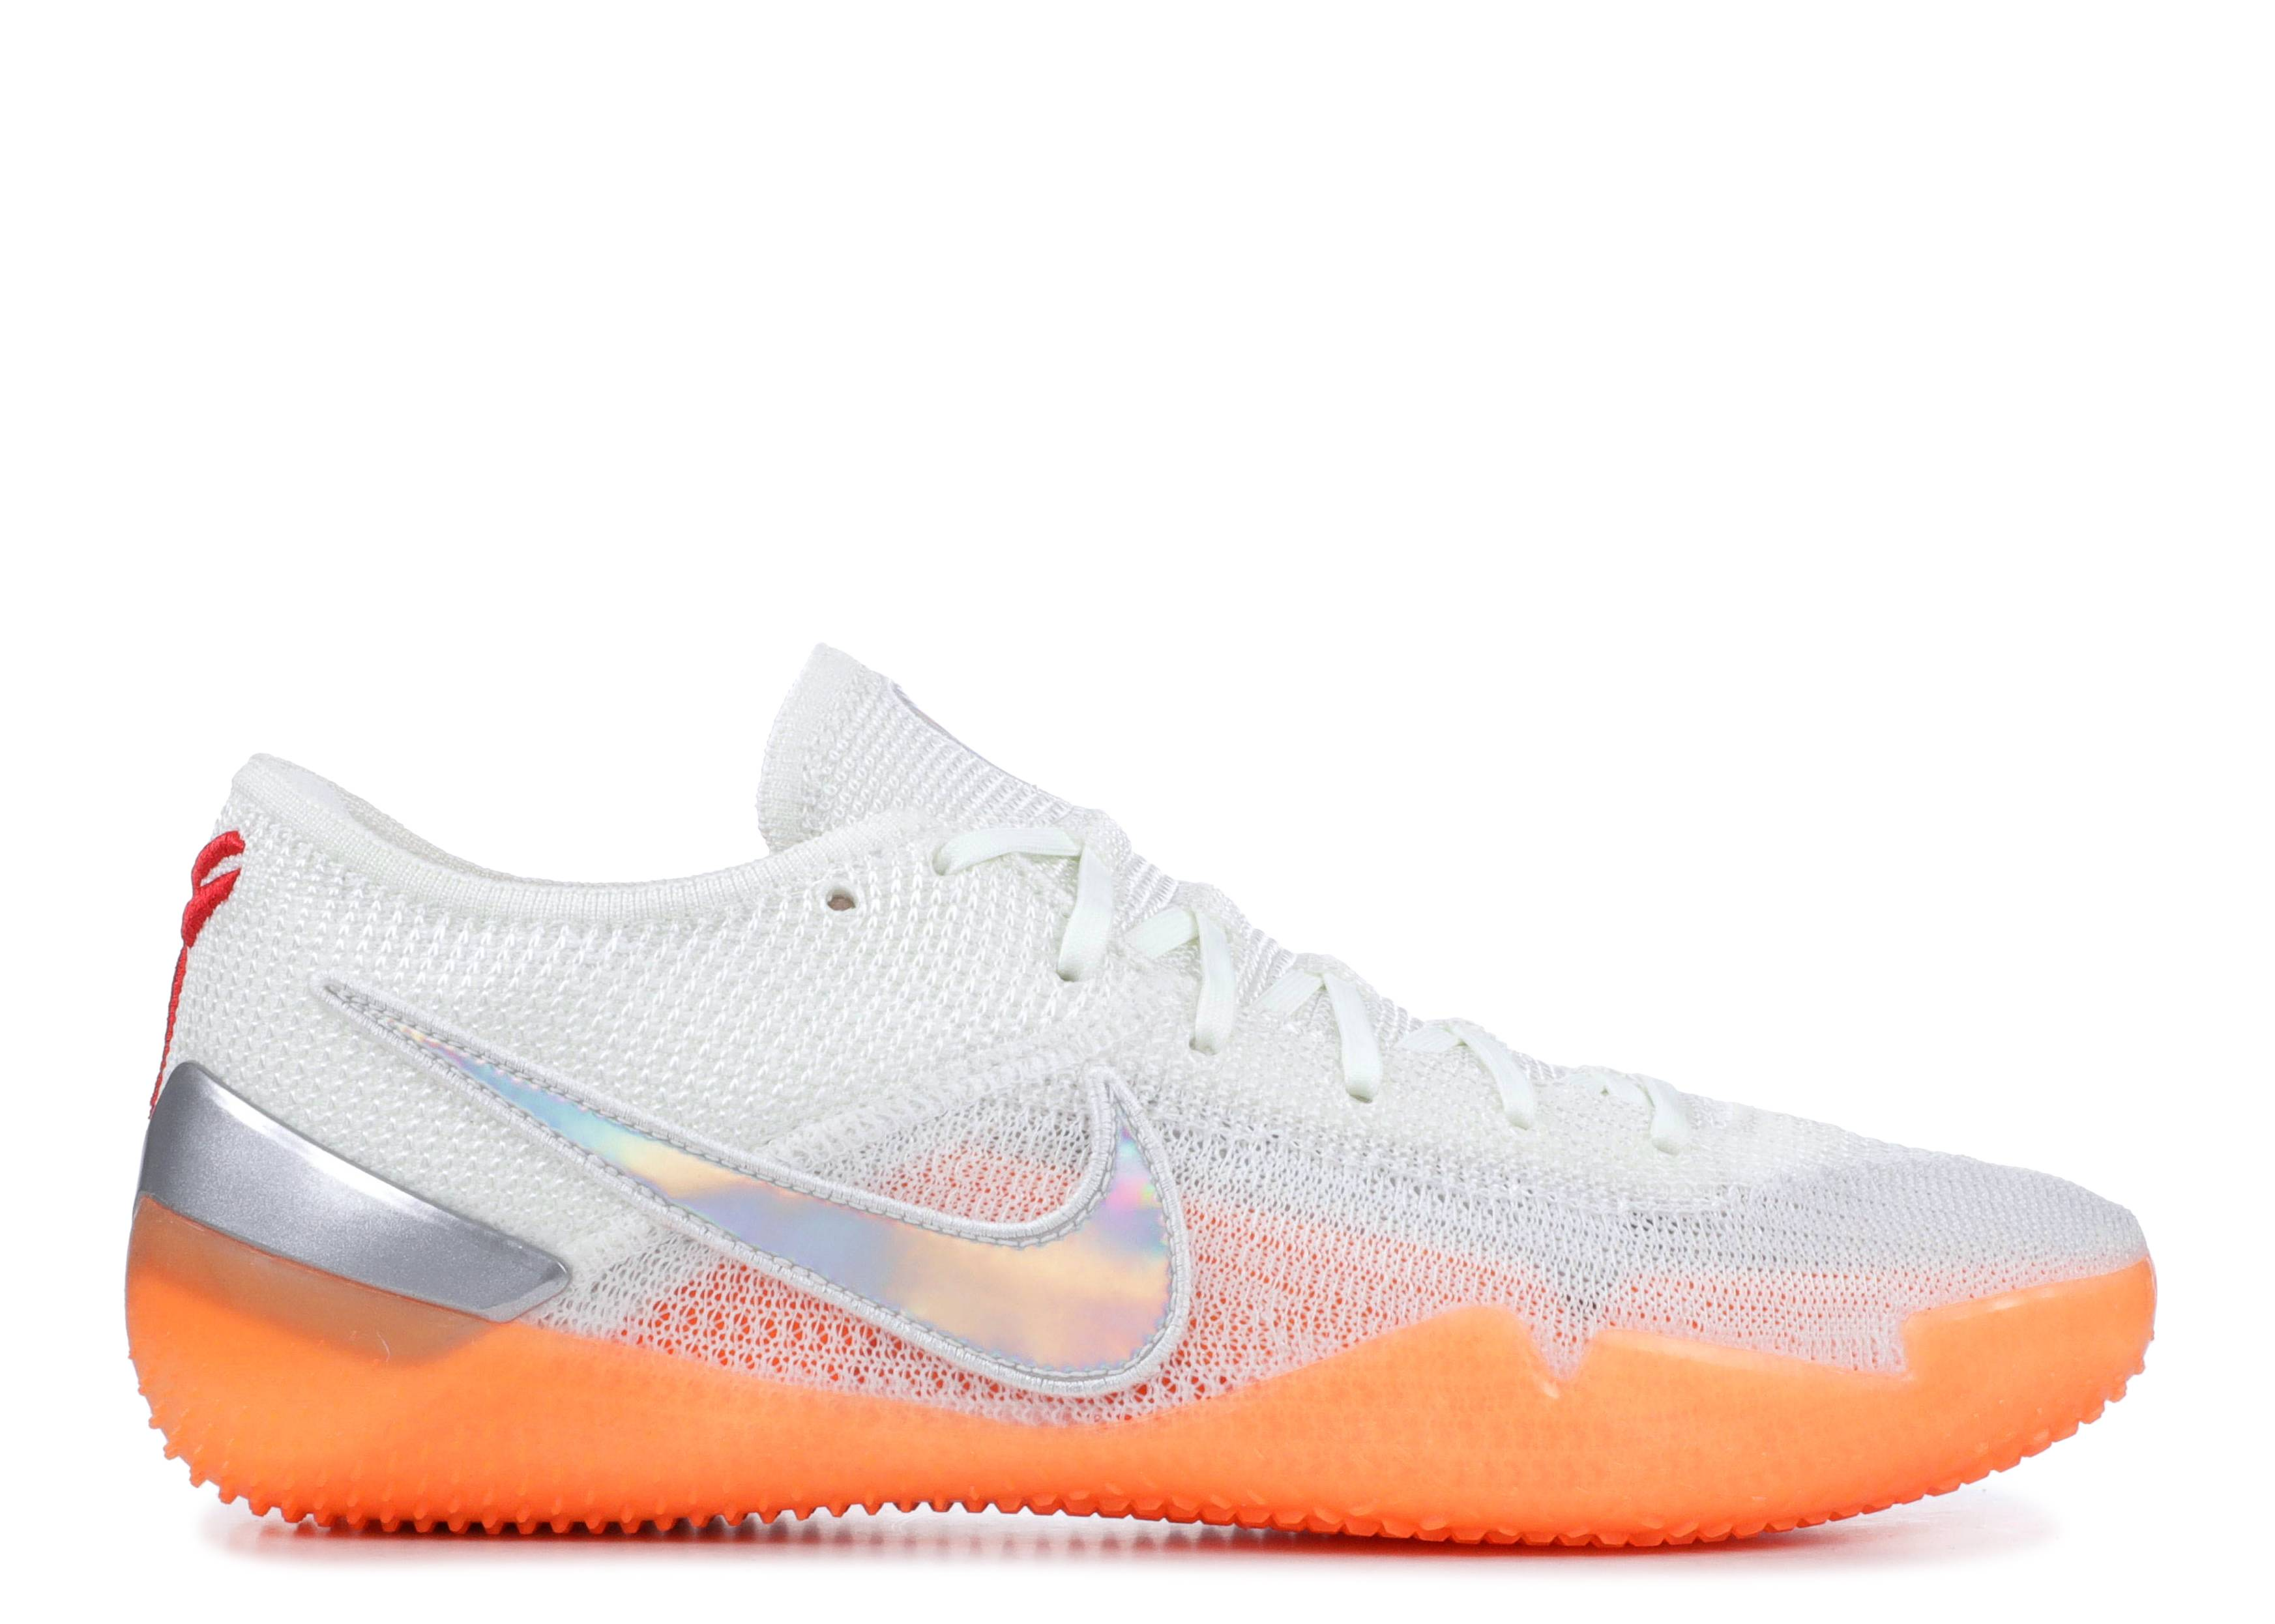 86d7a976adf Kobe Ad Nxt 360 - Nike - white/mutli-color-infrared 23 | Flight Club